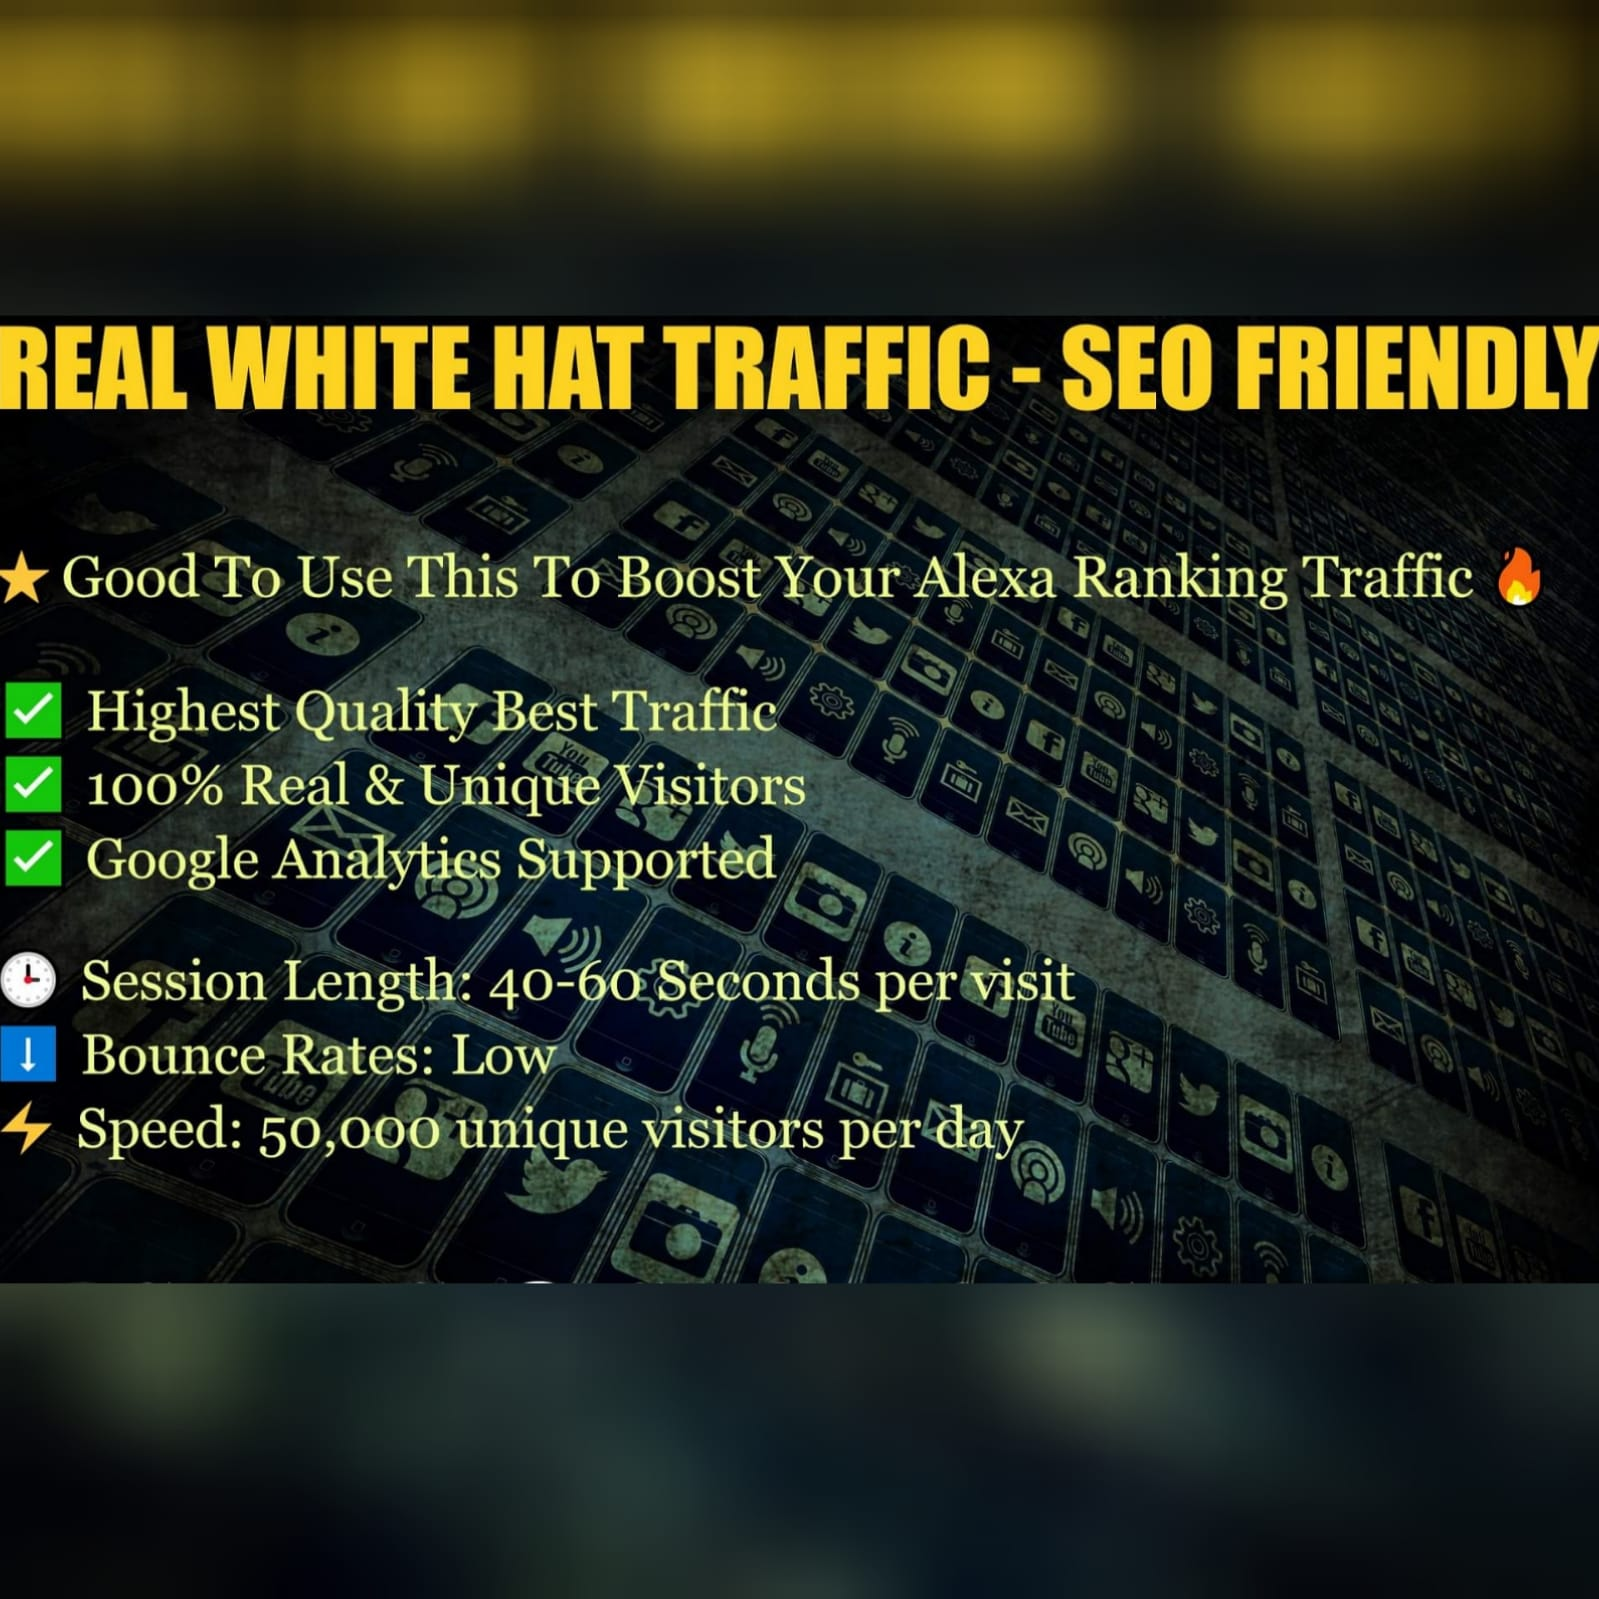 Real White Traffic - Google / Alexa / Platforms - SEO FRIENDLY 1k per order